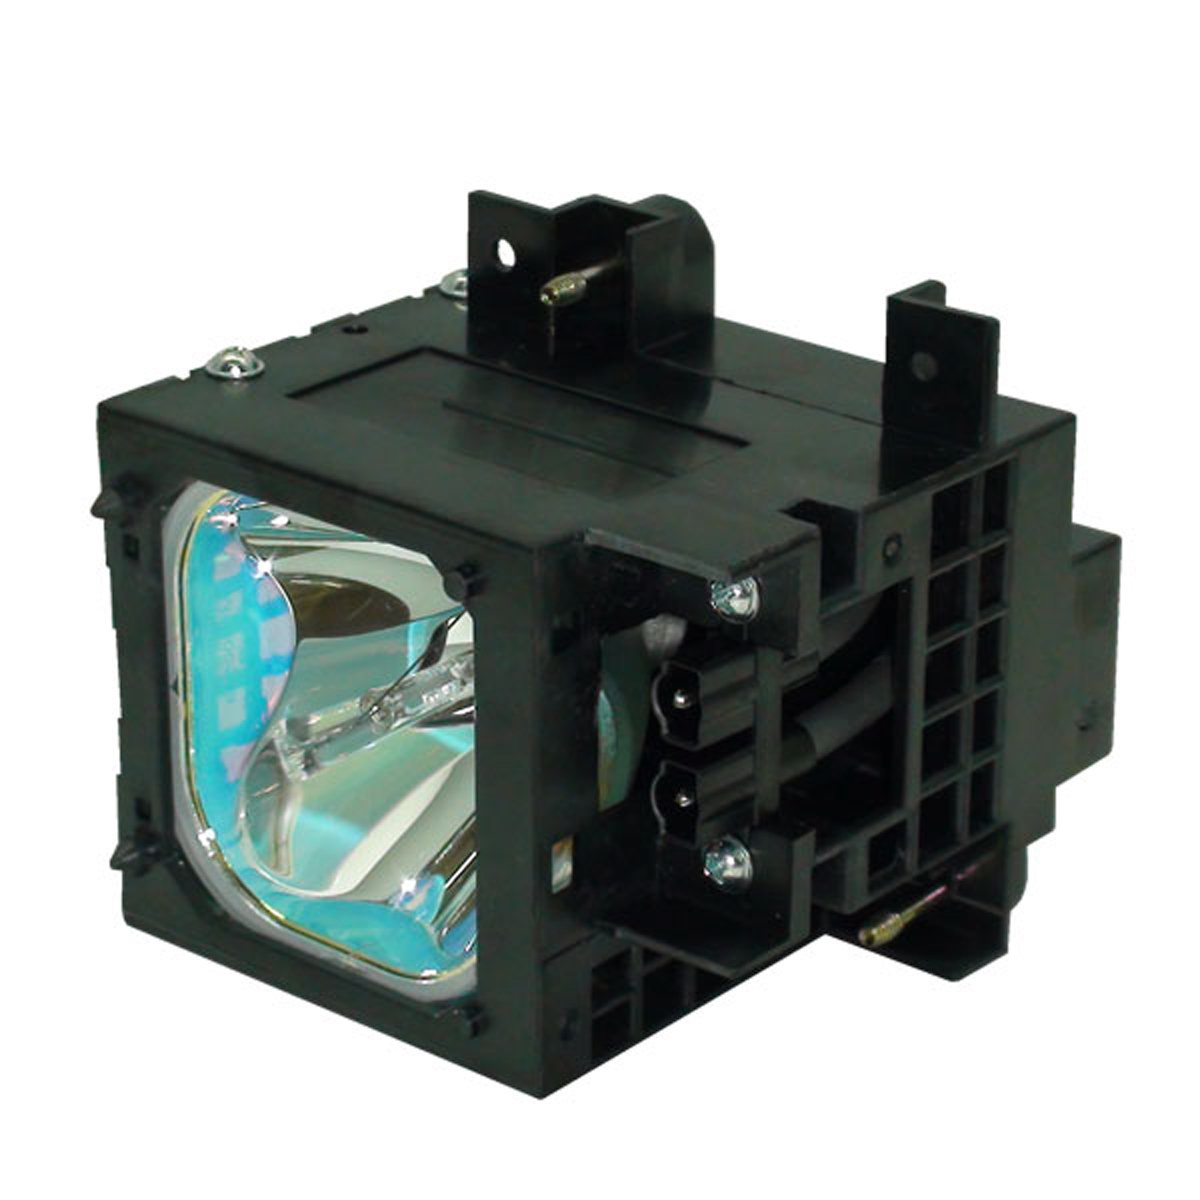 Osram Neolux Lamp Housing For Sony KDF42WE655 Projection ...